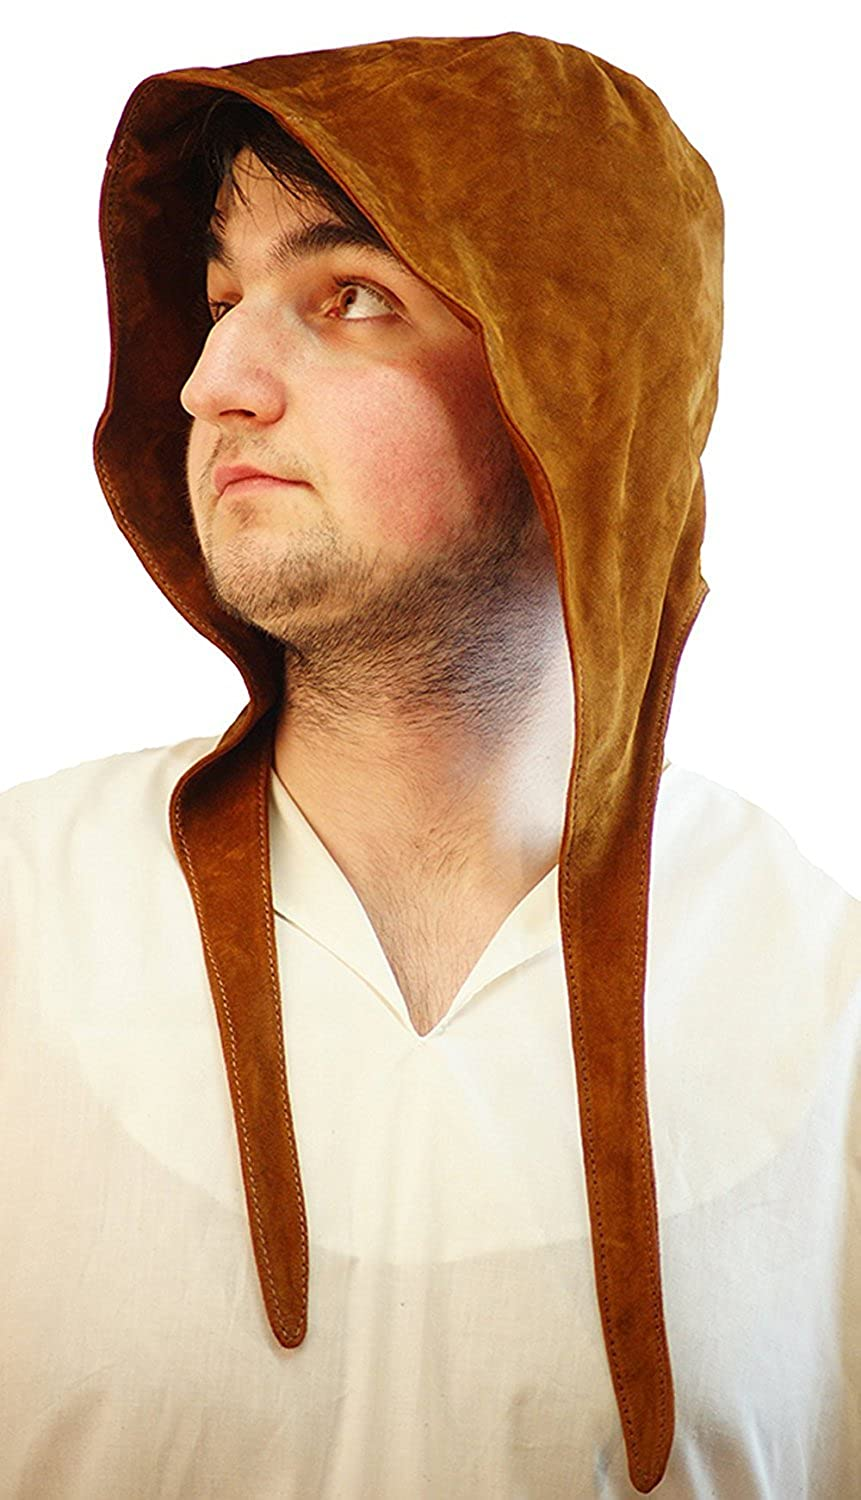 Medieval Men's Brown Leather Coif Head Cap - DeluxeAdultCostumes.com